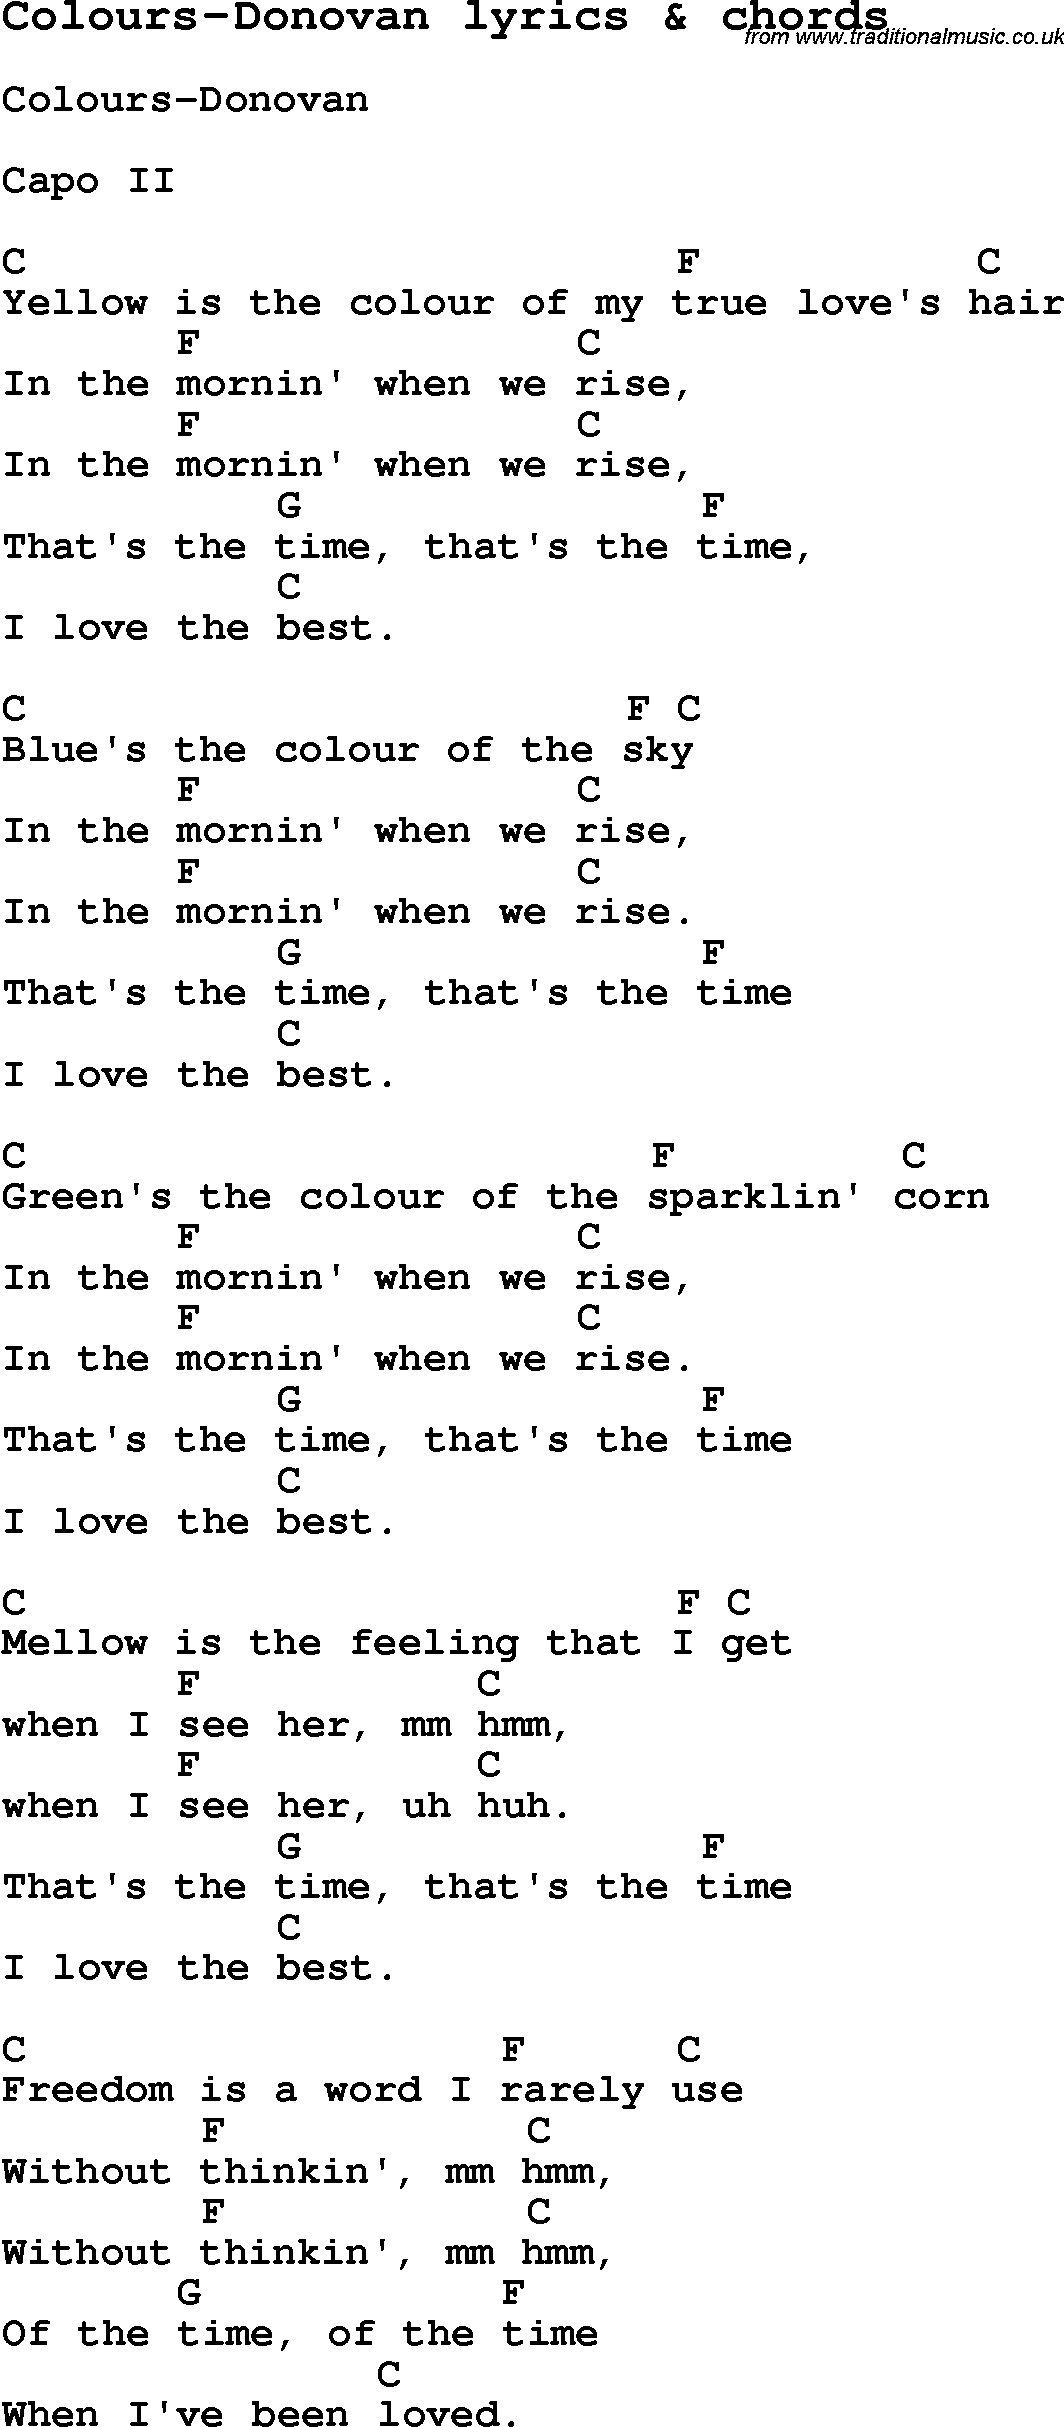 Love Song Lyrics For Colours Donovan With Chords For Ukulele